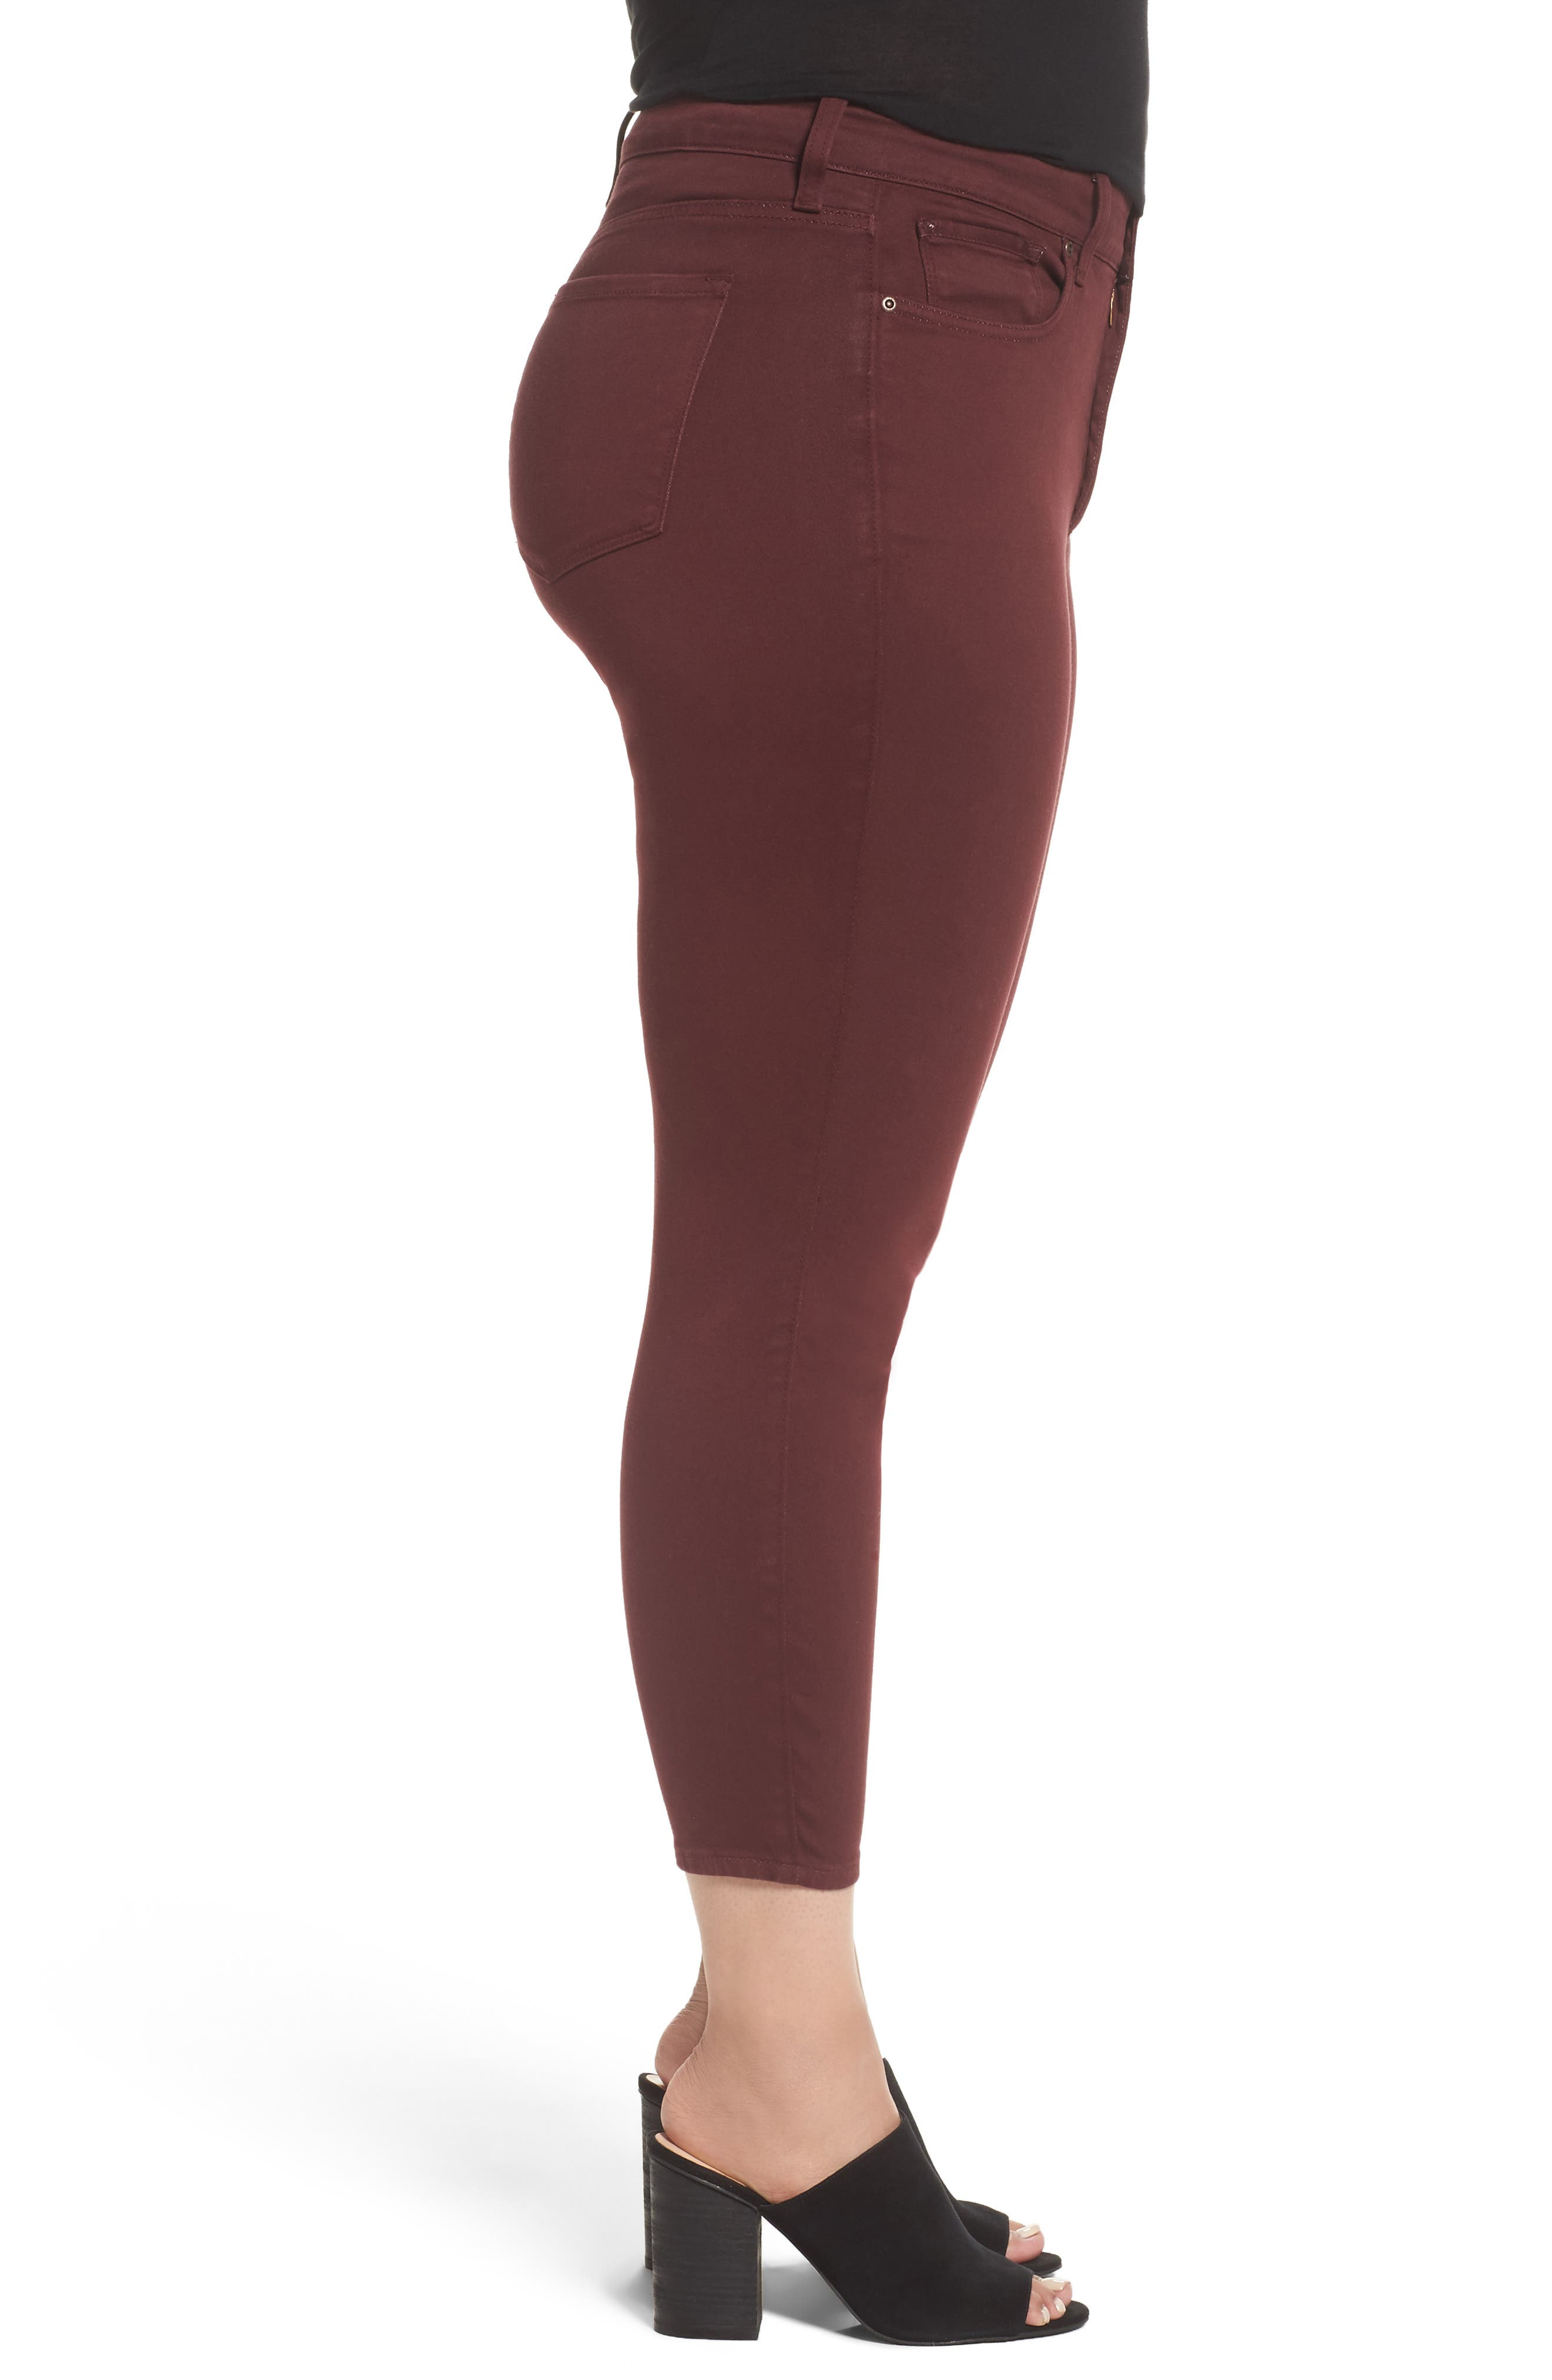 Ami Stretch Skinny Jeans,                             Alternate thumbnail 3, color,                             Deep Currant